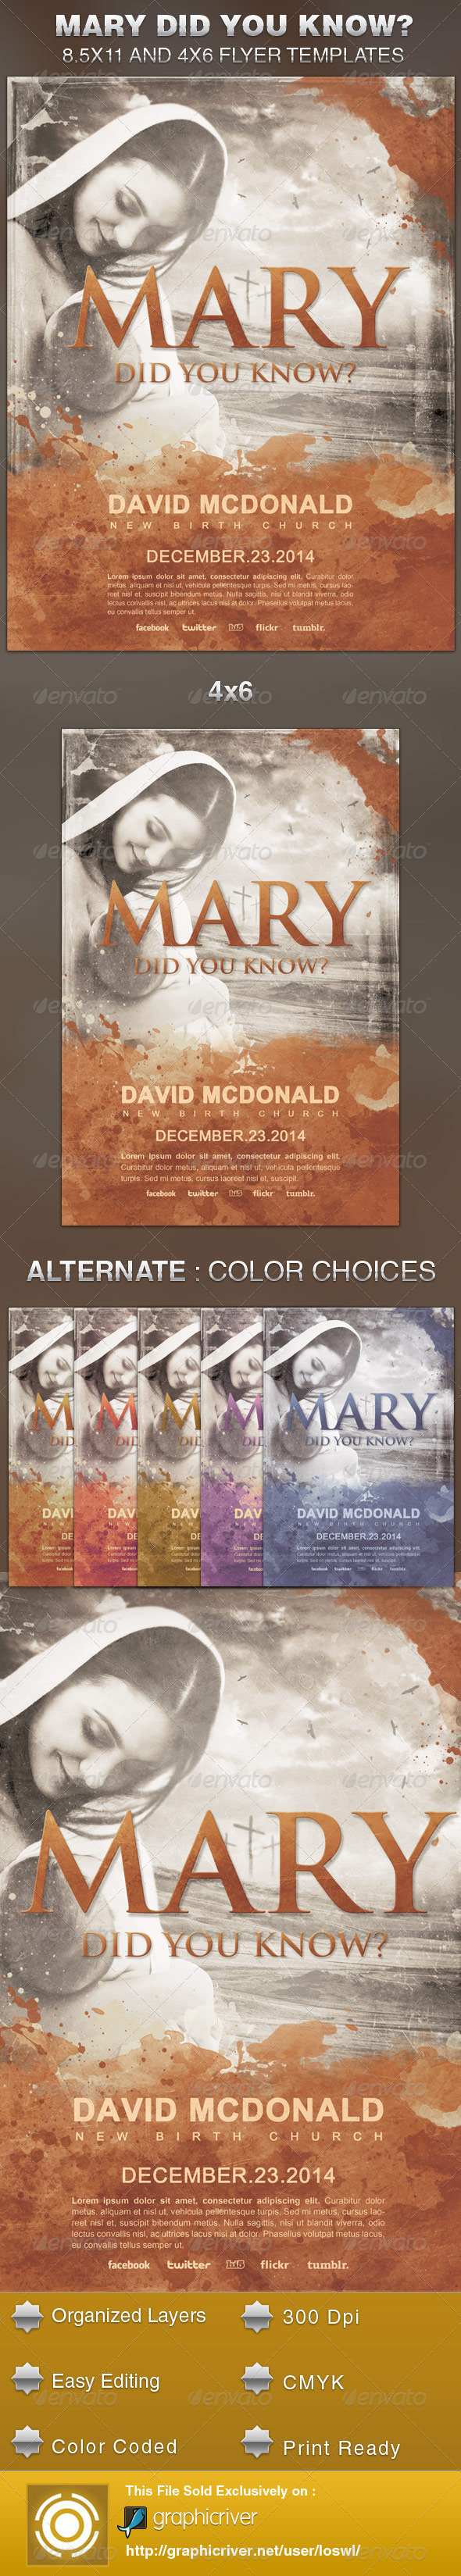 GraphicRiver Mary Did You Know Church Flyer Template 5700040